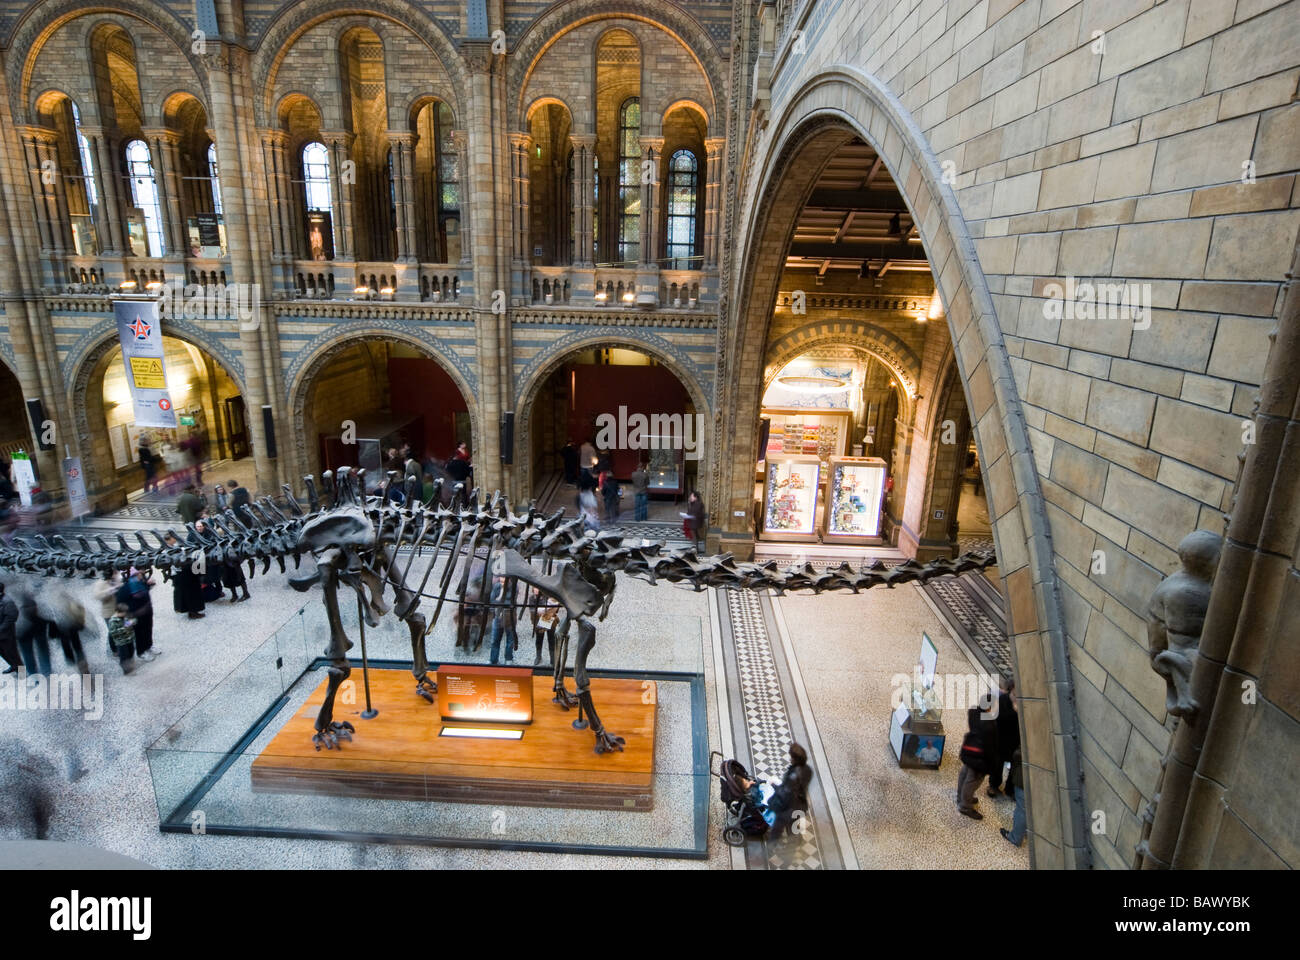 natural history museum london interior - Stock Image